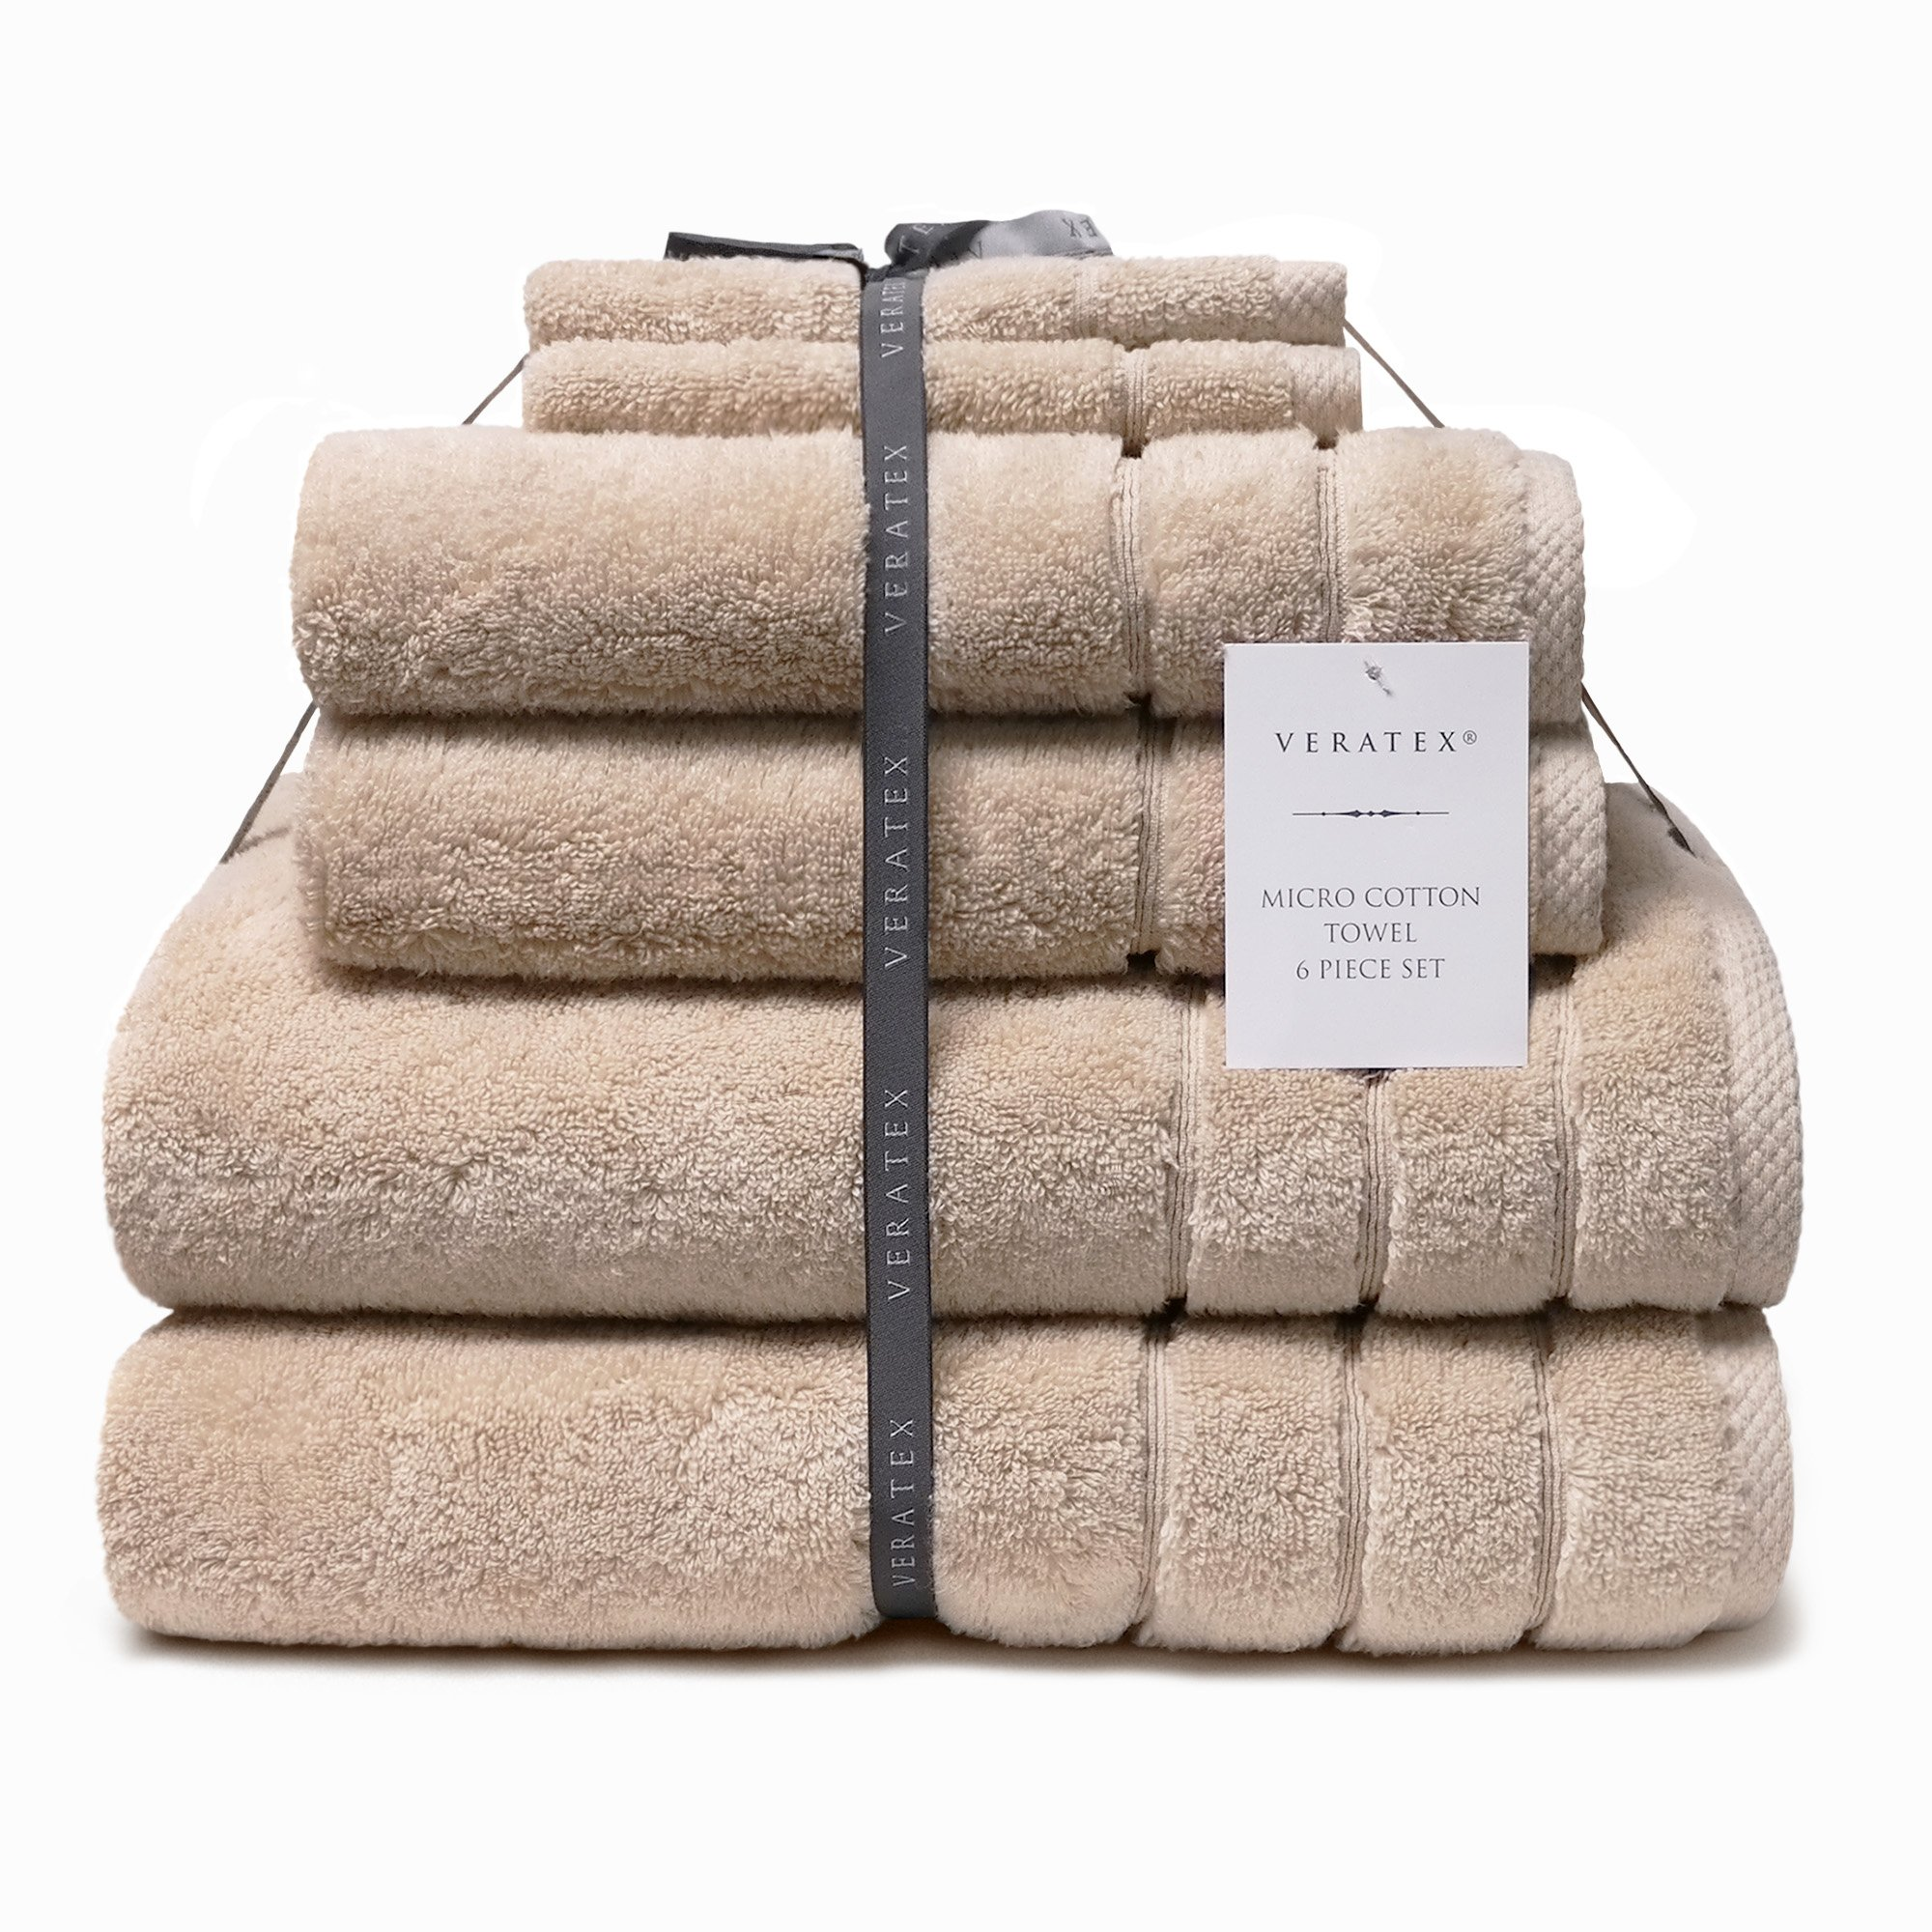 CDM product Veratex Turkish Micro Cotton Terry 6 Piece Set, Linen Bath Towel, big image